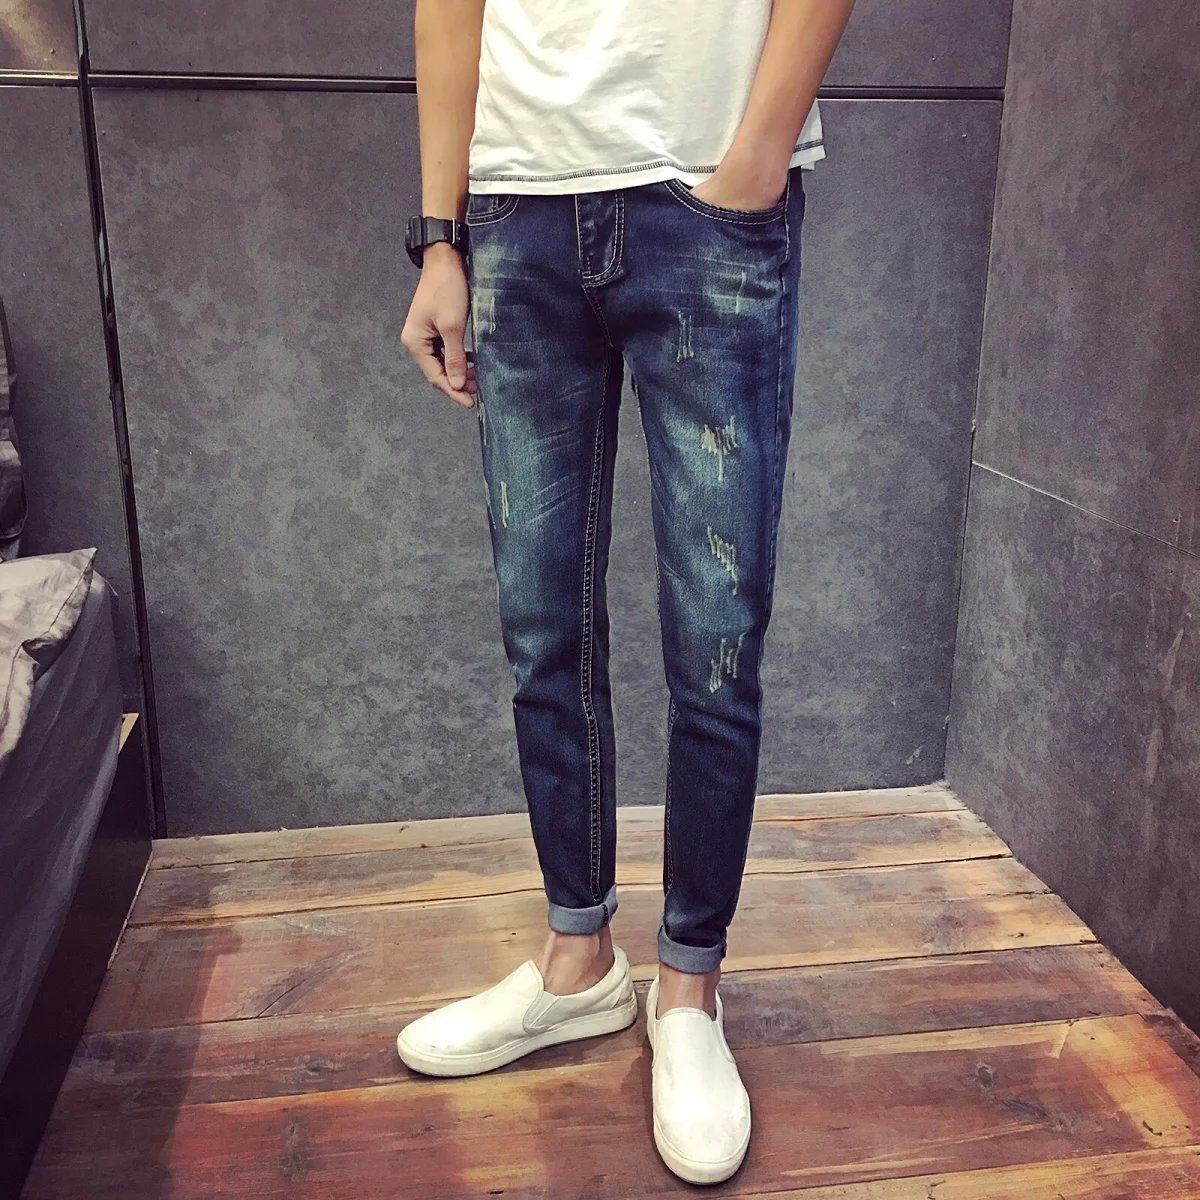 Japanese-style Retro Boys Jeans Young MEN'S Cat Whisker Korean-style Skinny Pants Fashion Man Slim Fit Trousers Spring Clothing